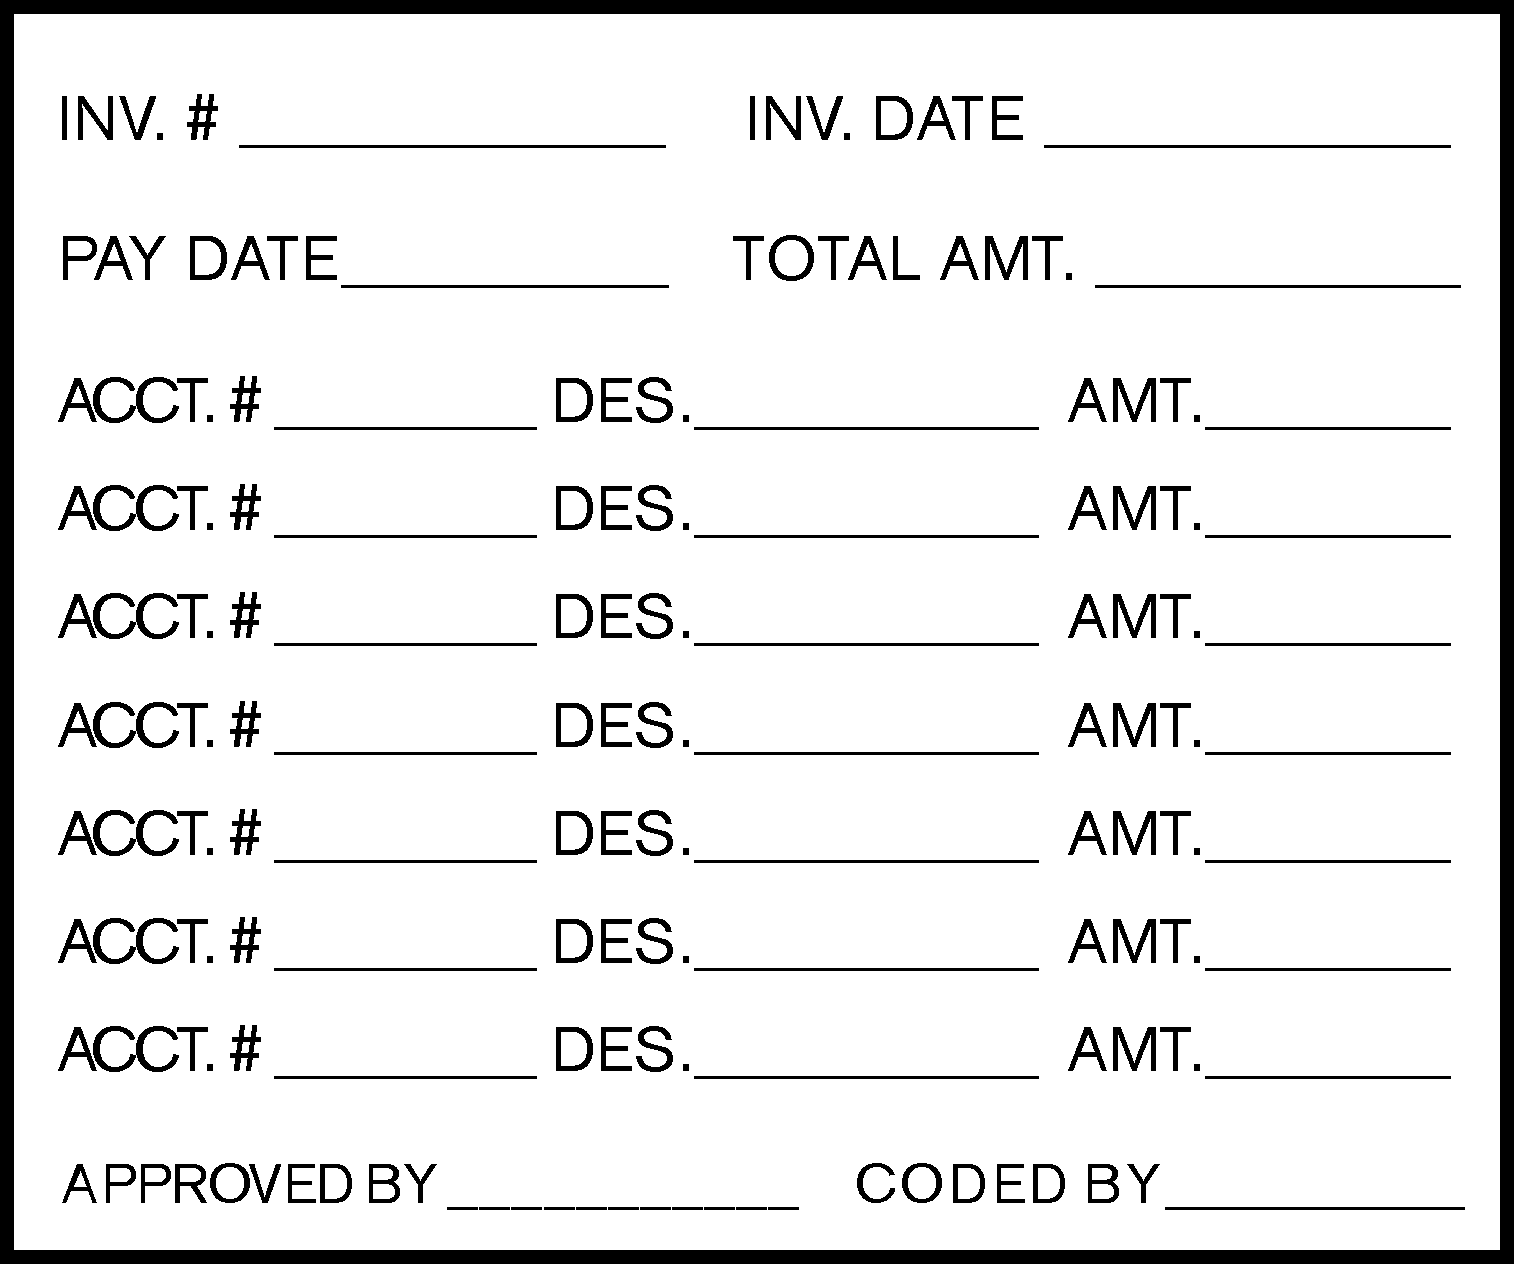 Accounts Payable Coding Stamp Arts